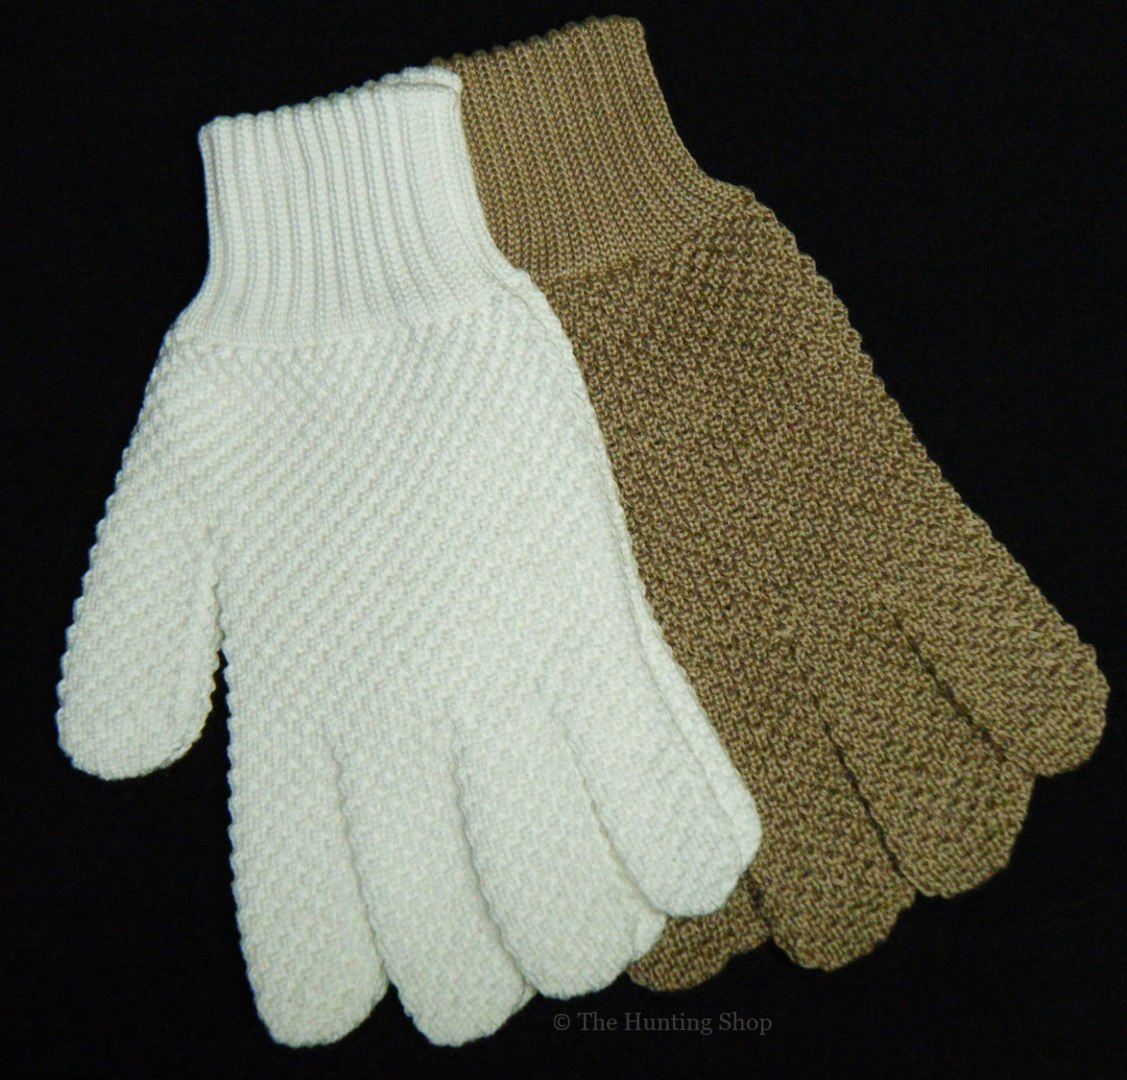 Knitting Pattern For Hunting Mittens : Knitted Cotton Hunting Gloves. White or Beige - The Hunting Shop Ltd.